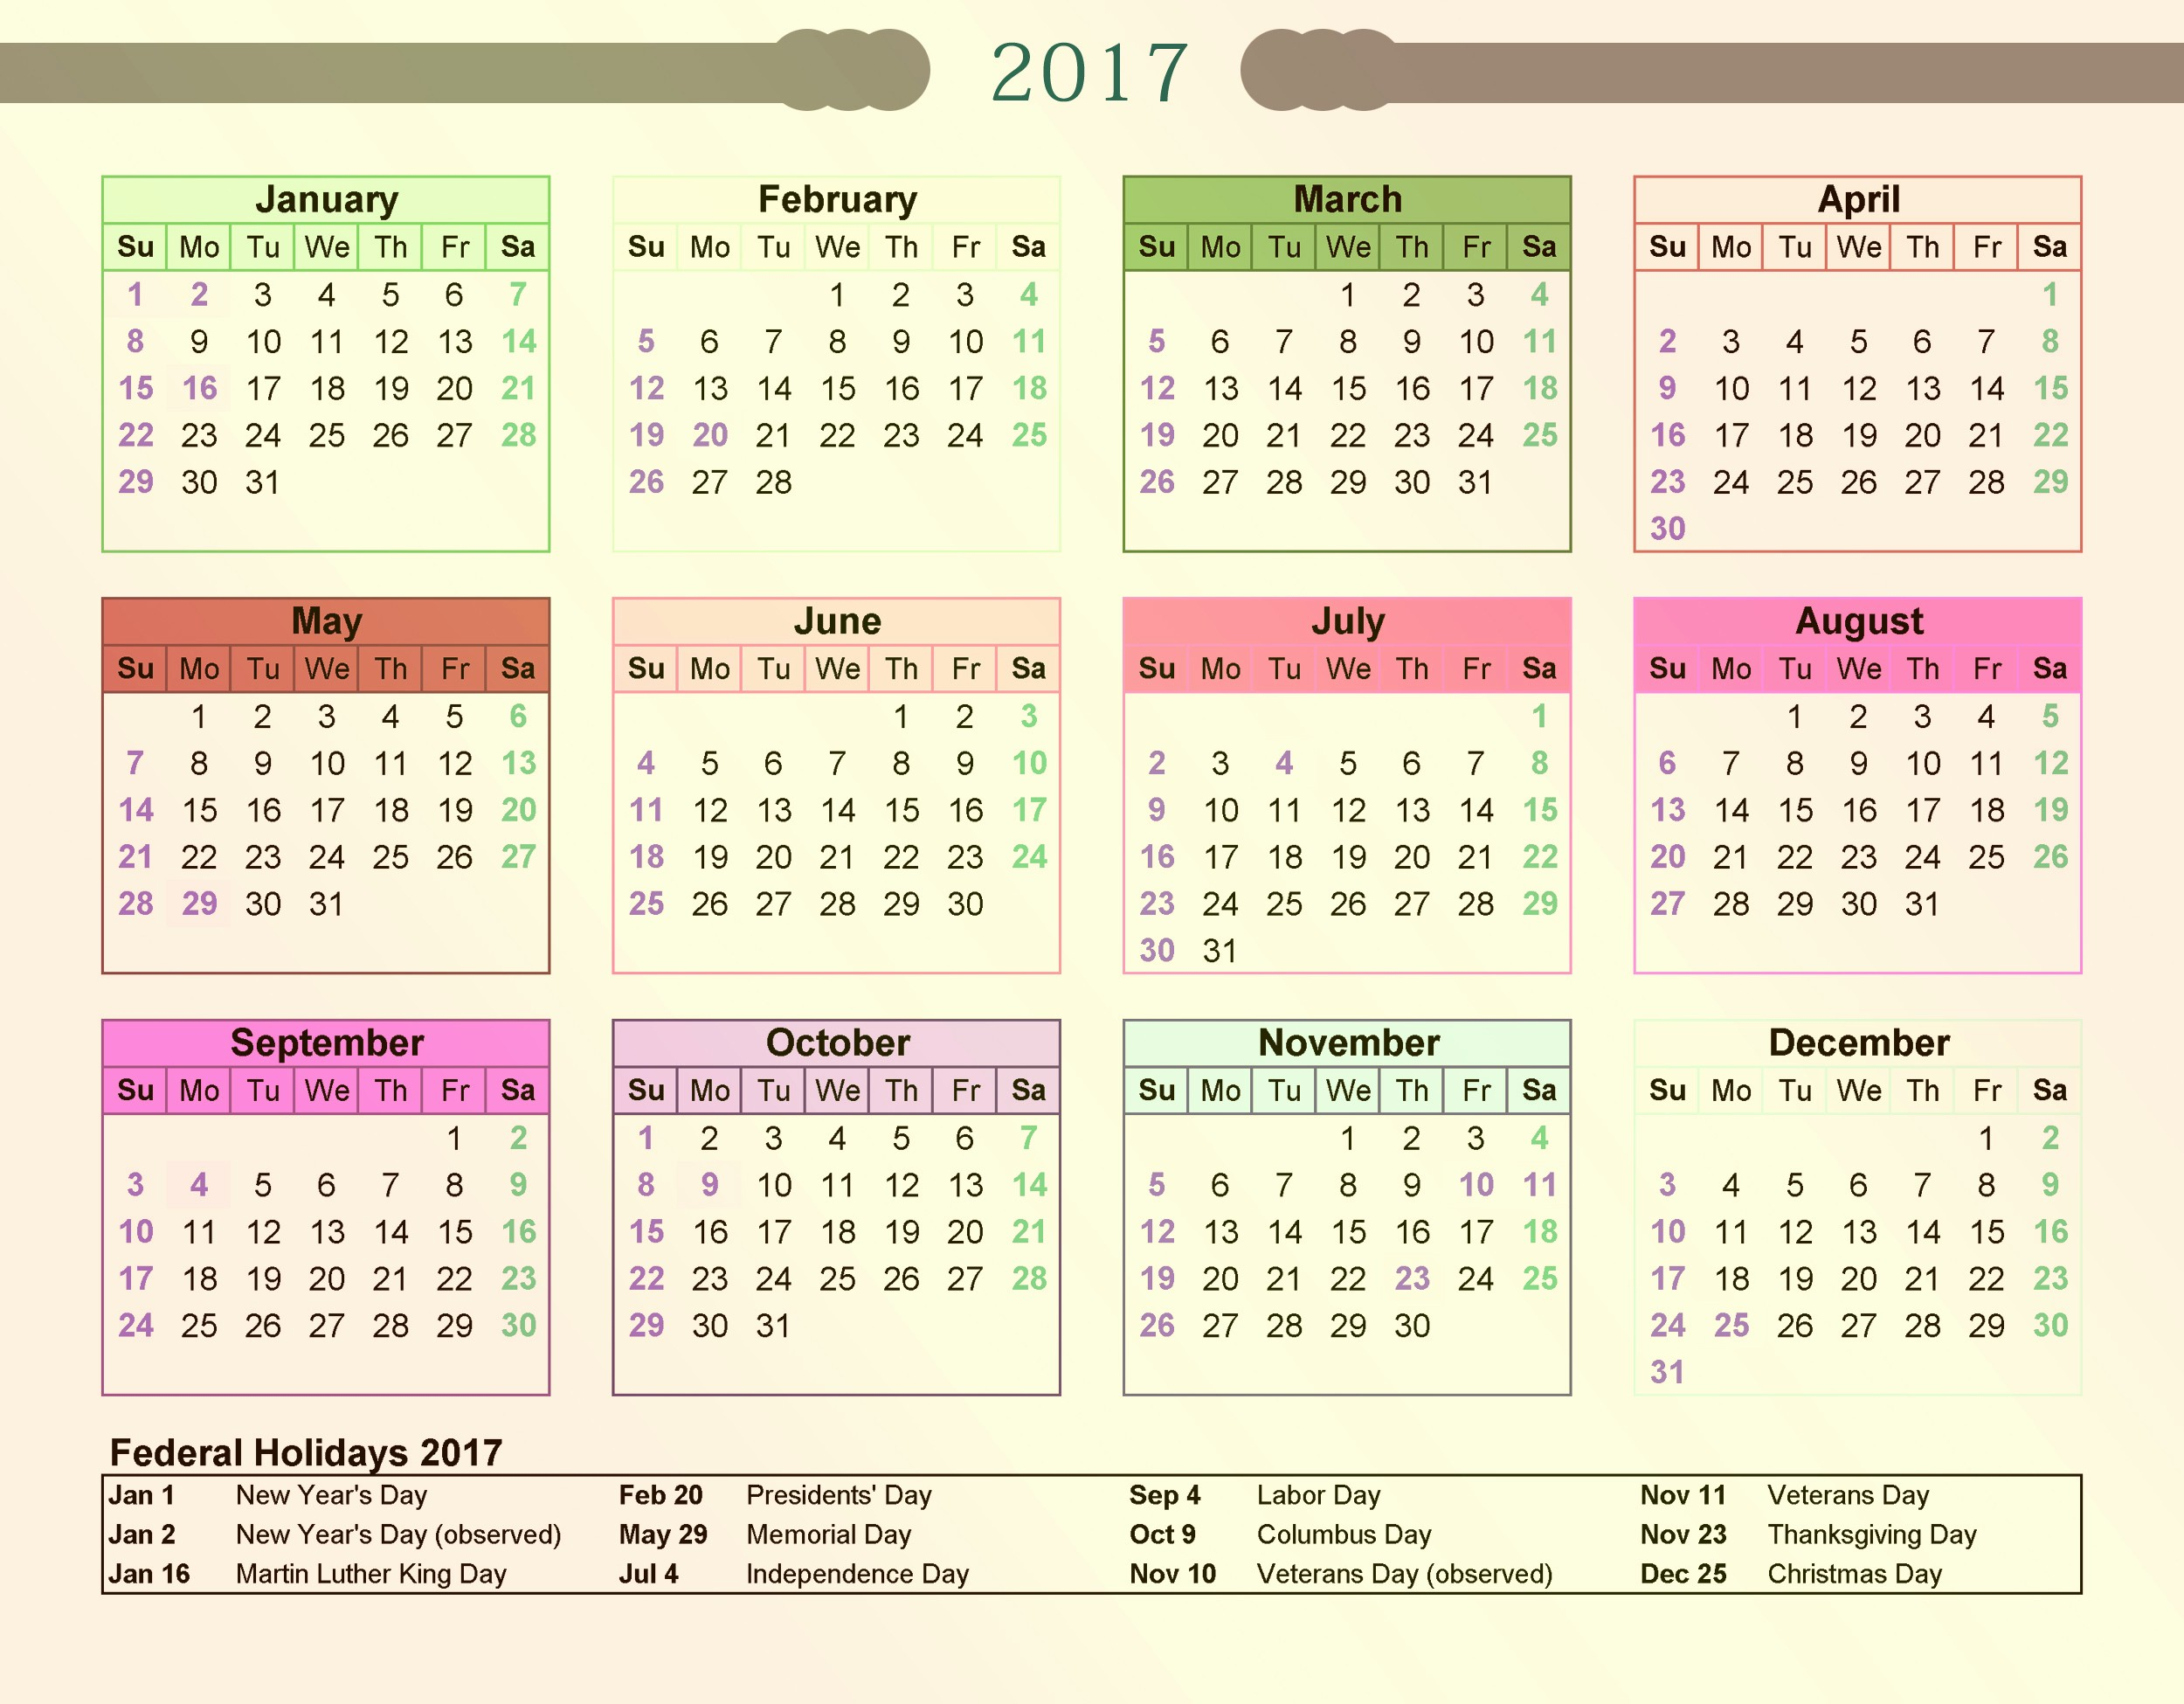 2017 Calendar with Holidays Template Elegant Federal Calendar 2017 with Holidays